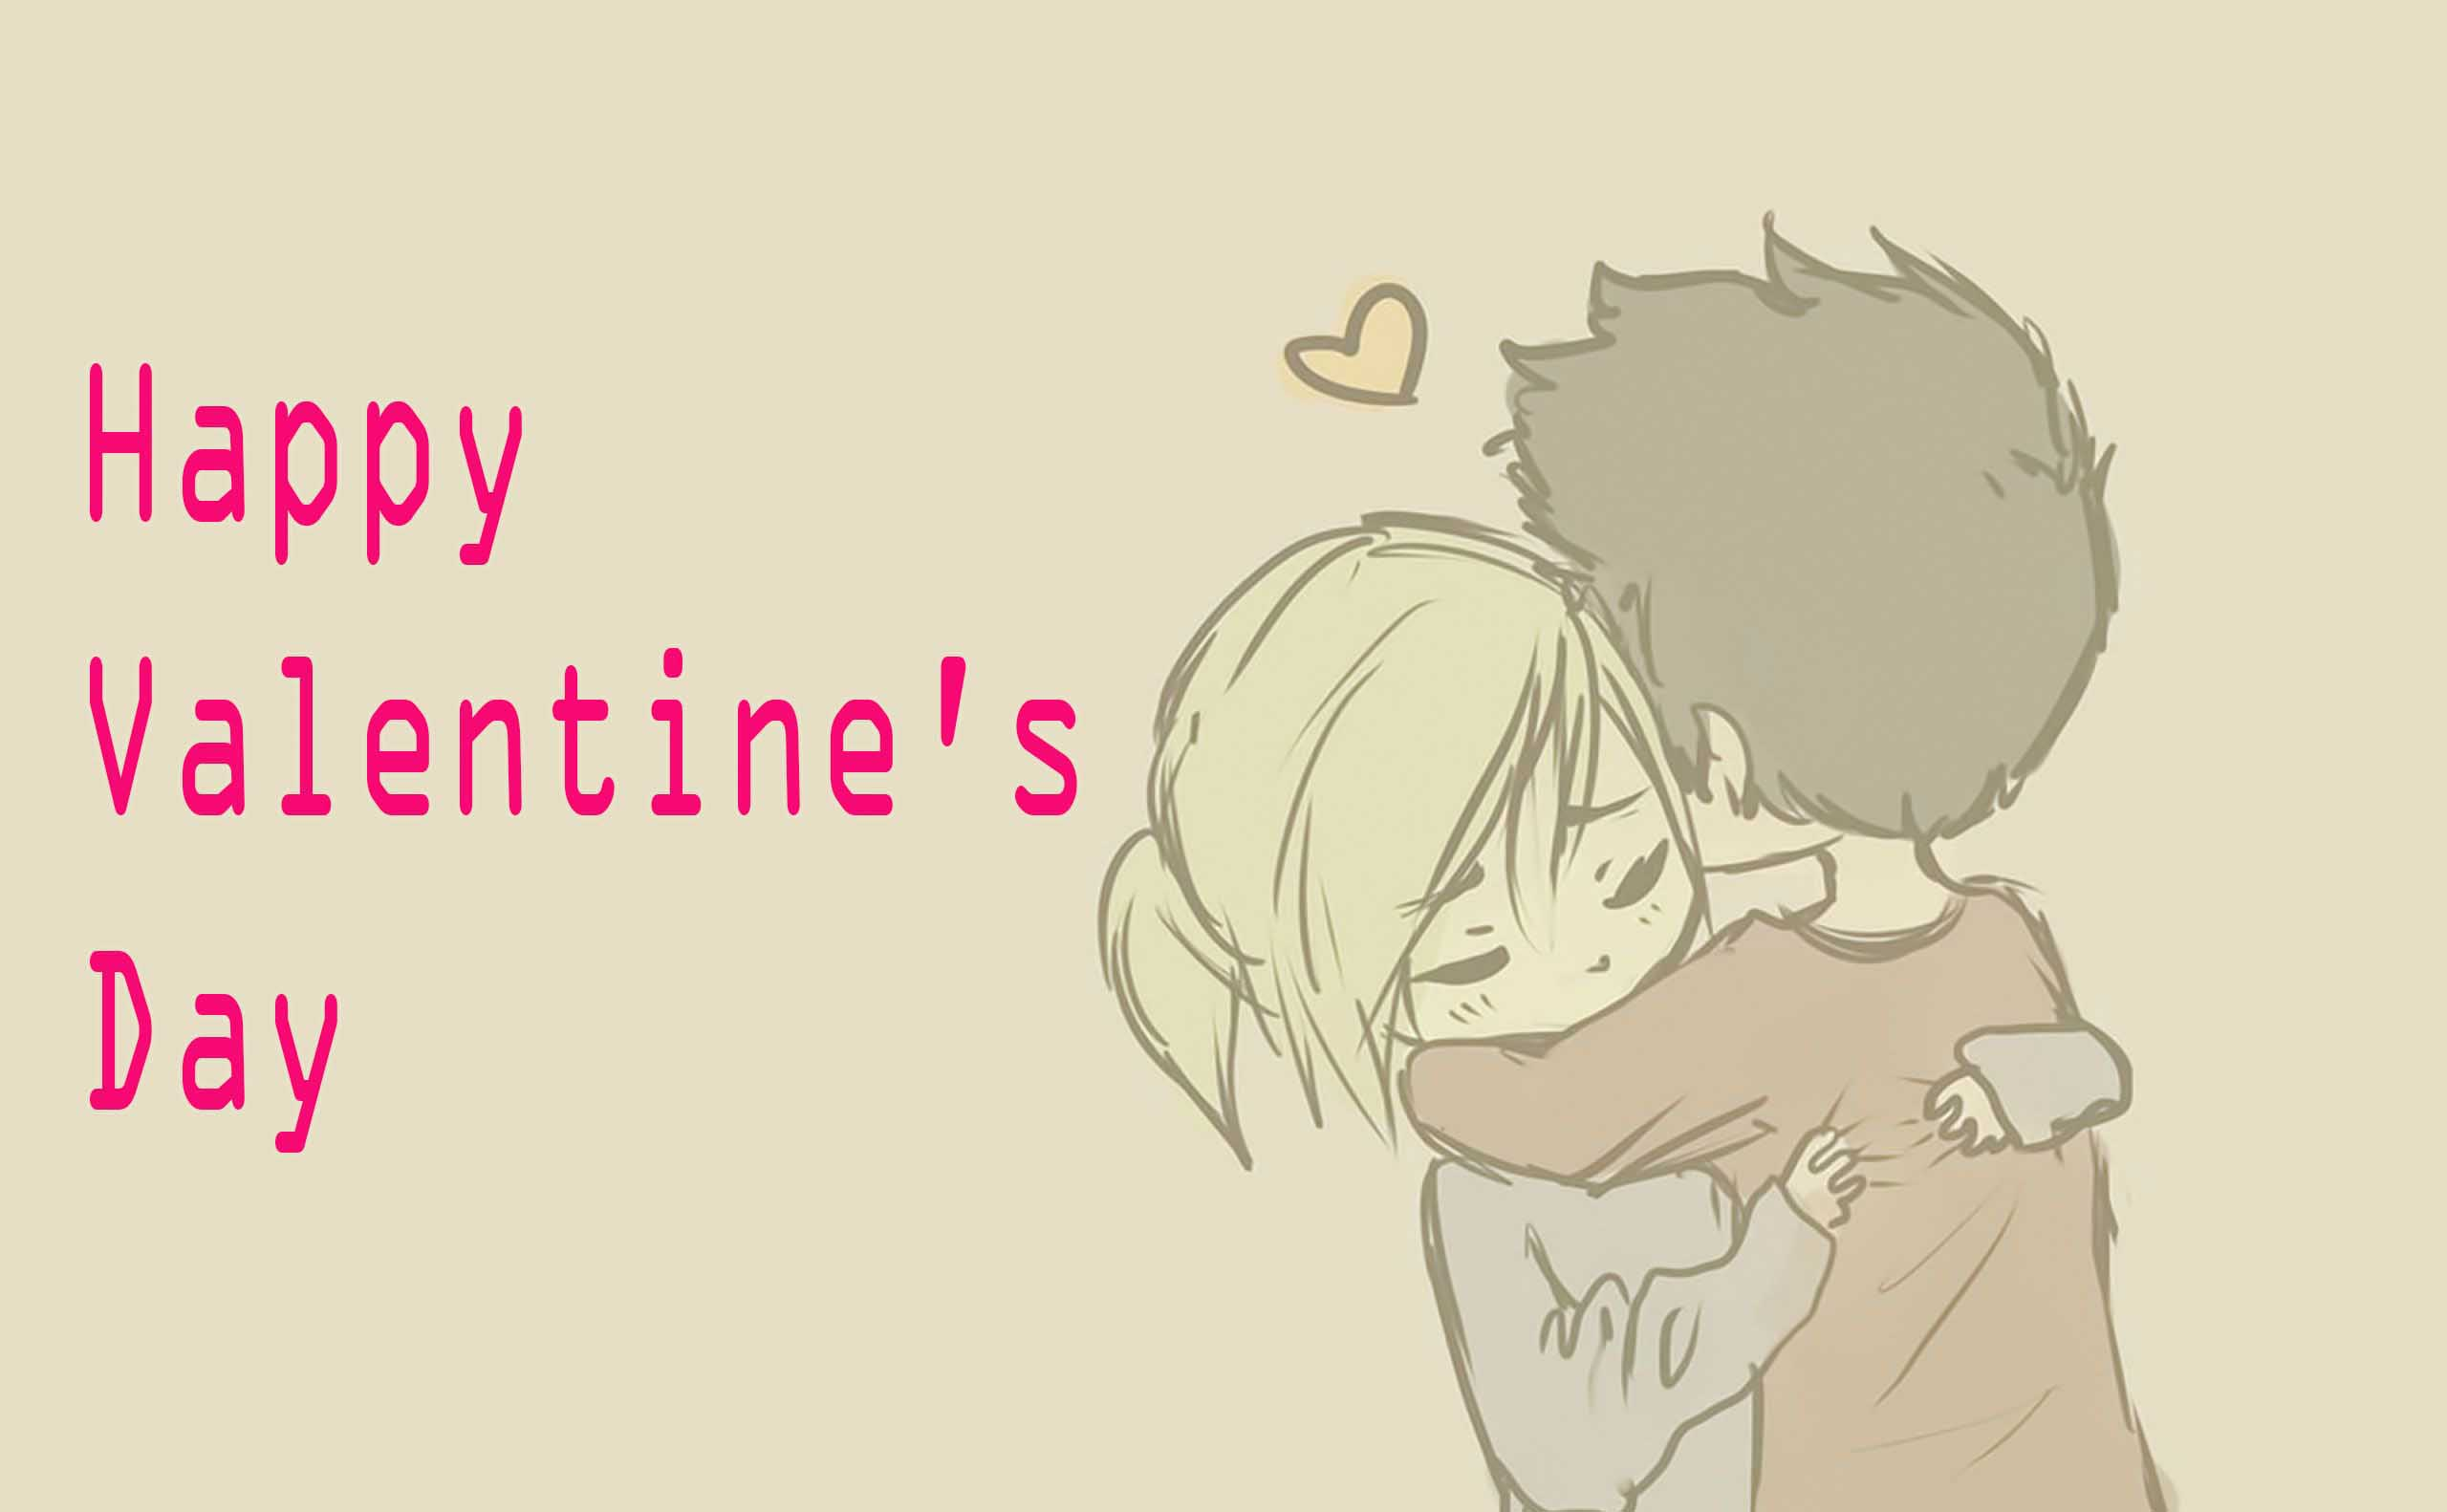 Amazing Love Couple Cartoon HD Wallpaper Download - Cartoon-love-couple-hd-wallpaper-for-happy-valentines-day-free-download-PIC-MCH051391  You Should Have_743418.jpg